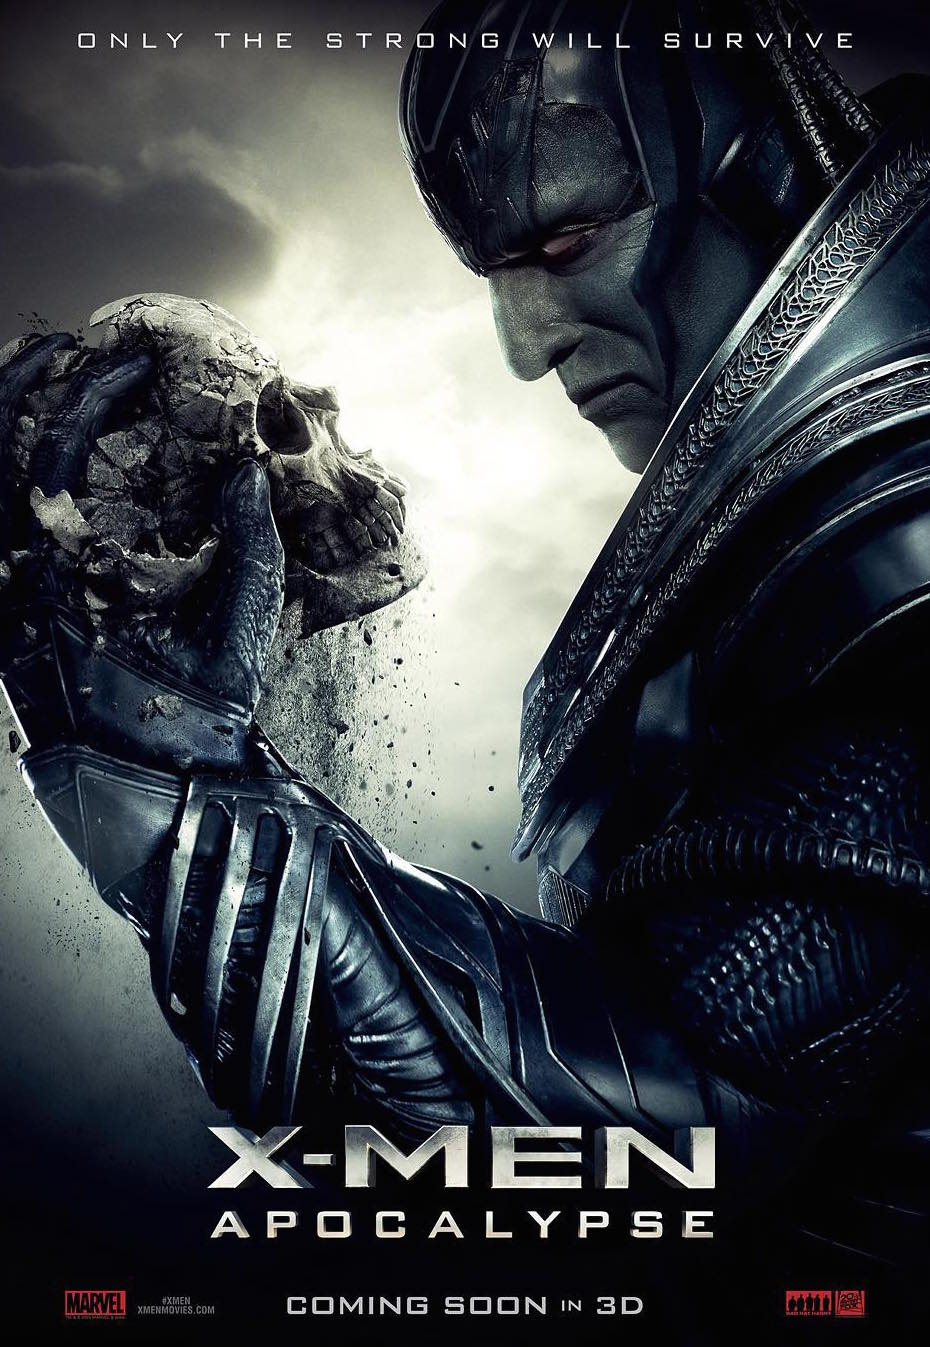 [Updated] Stylish X-Men: Apocalypse Character Posters Tease A Mythic Power